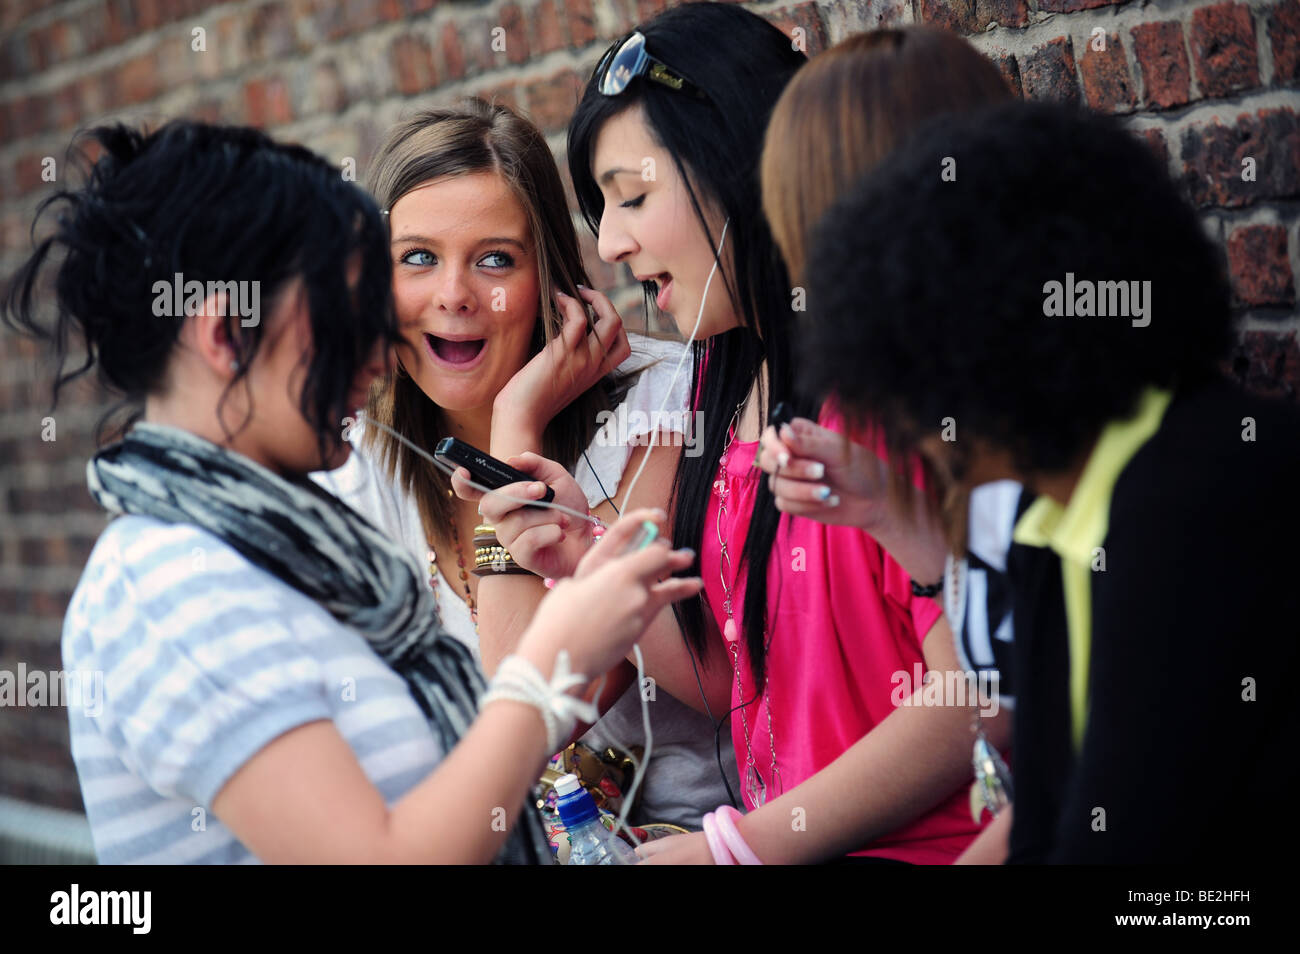 Students listen to an i-pod during a break at a sixth form further education college - Stock Image